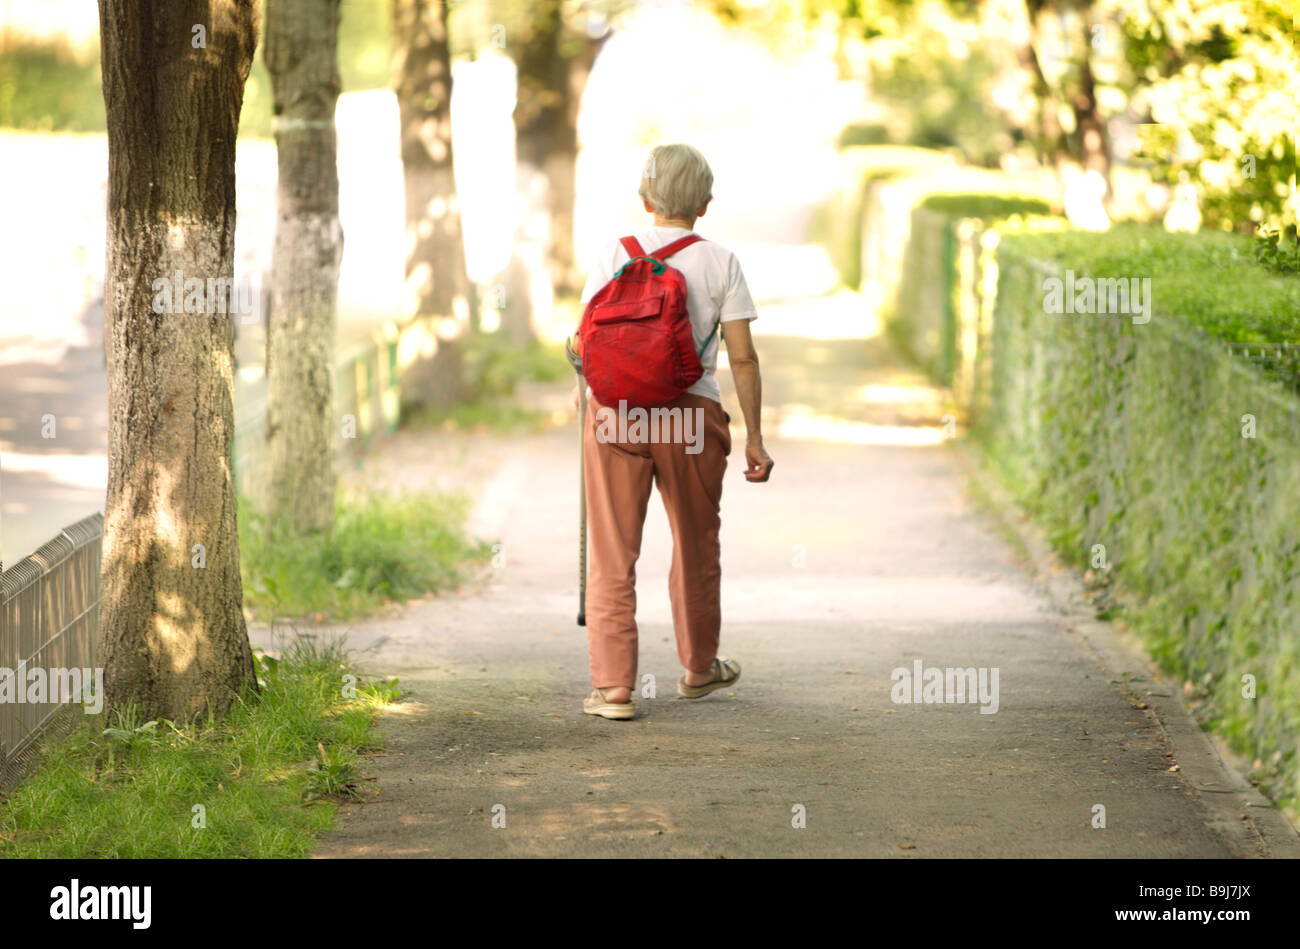 elderly woman walking in a green park with a red back pack on her shoulders - Stock Image